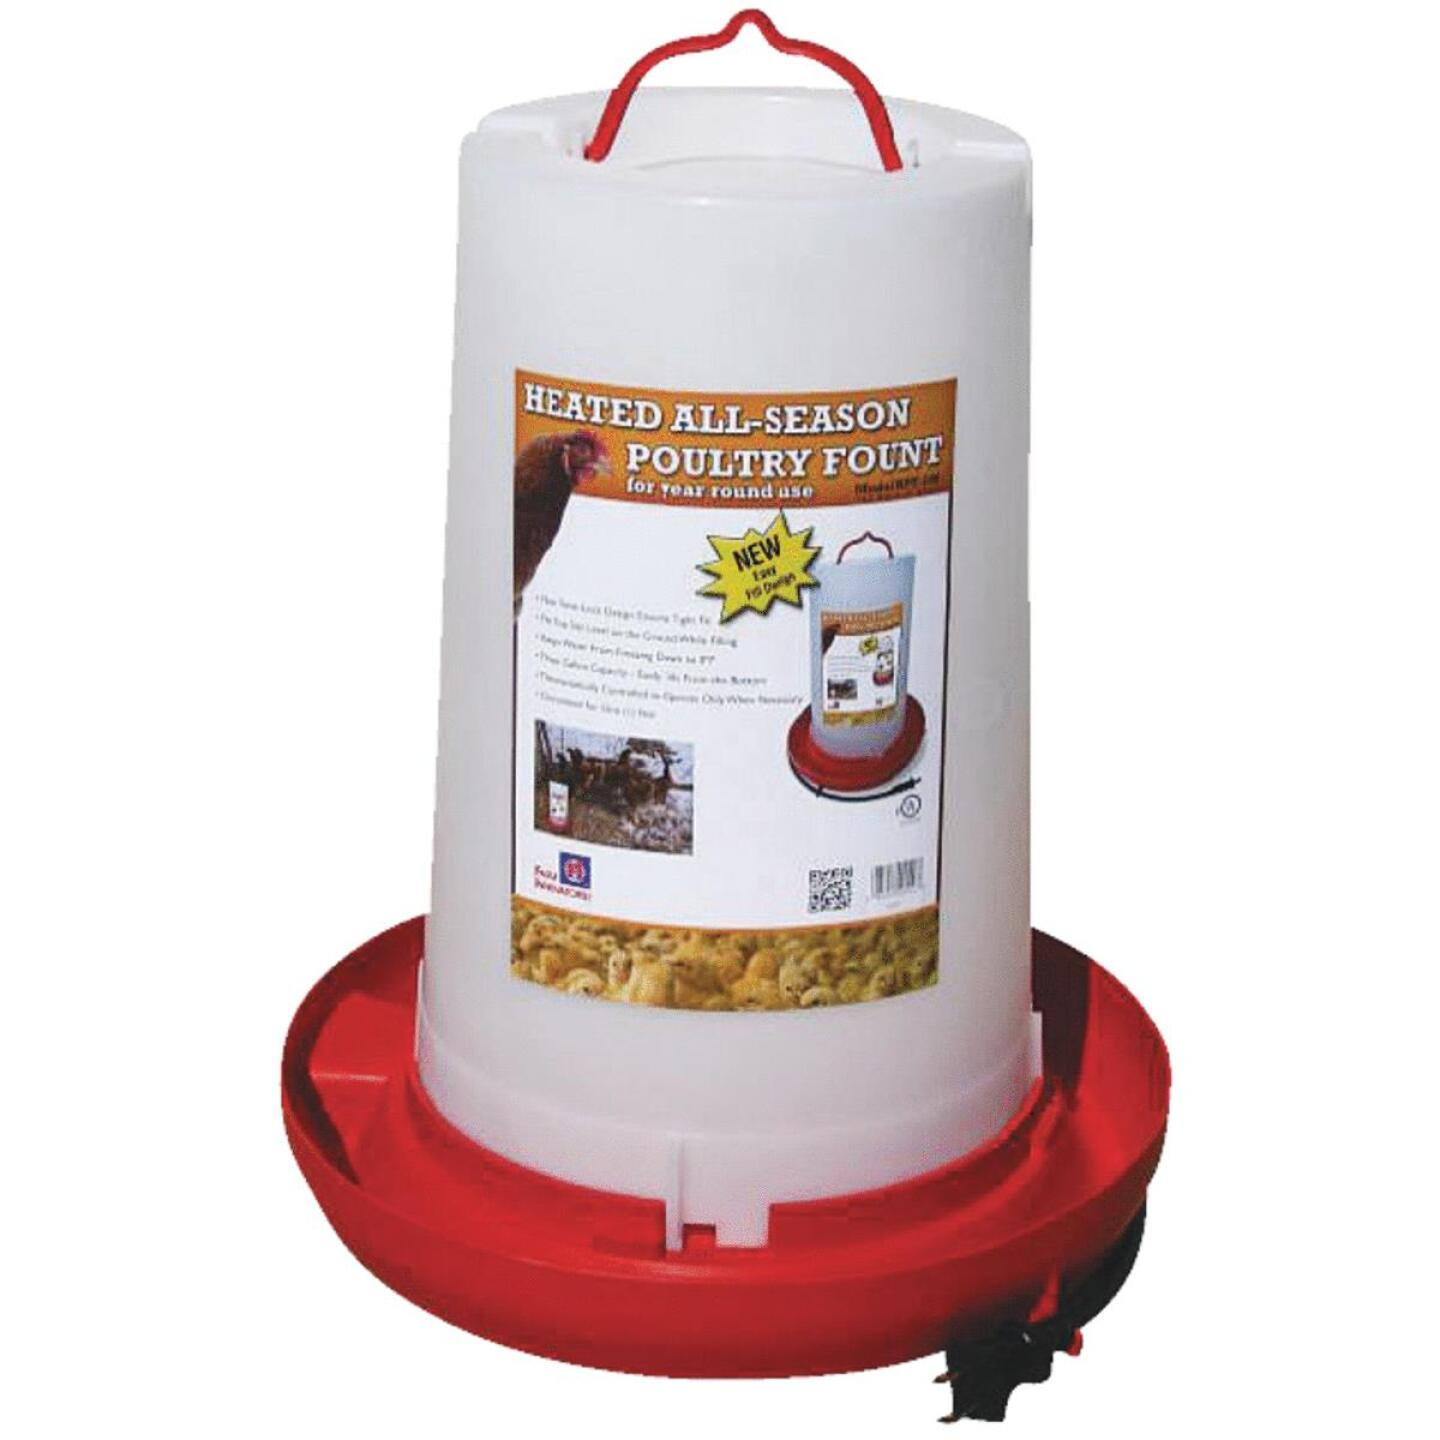 Farm Innovators 3 Gal. Plastic Heated Poultry Fountain Image 1